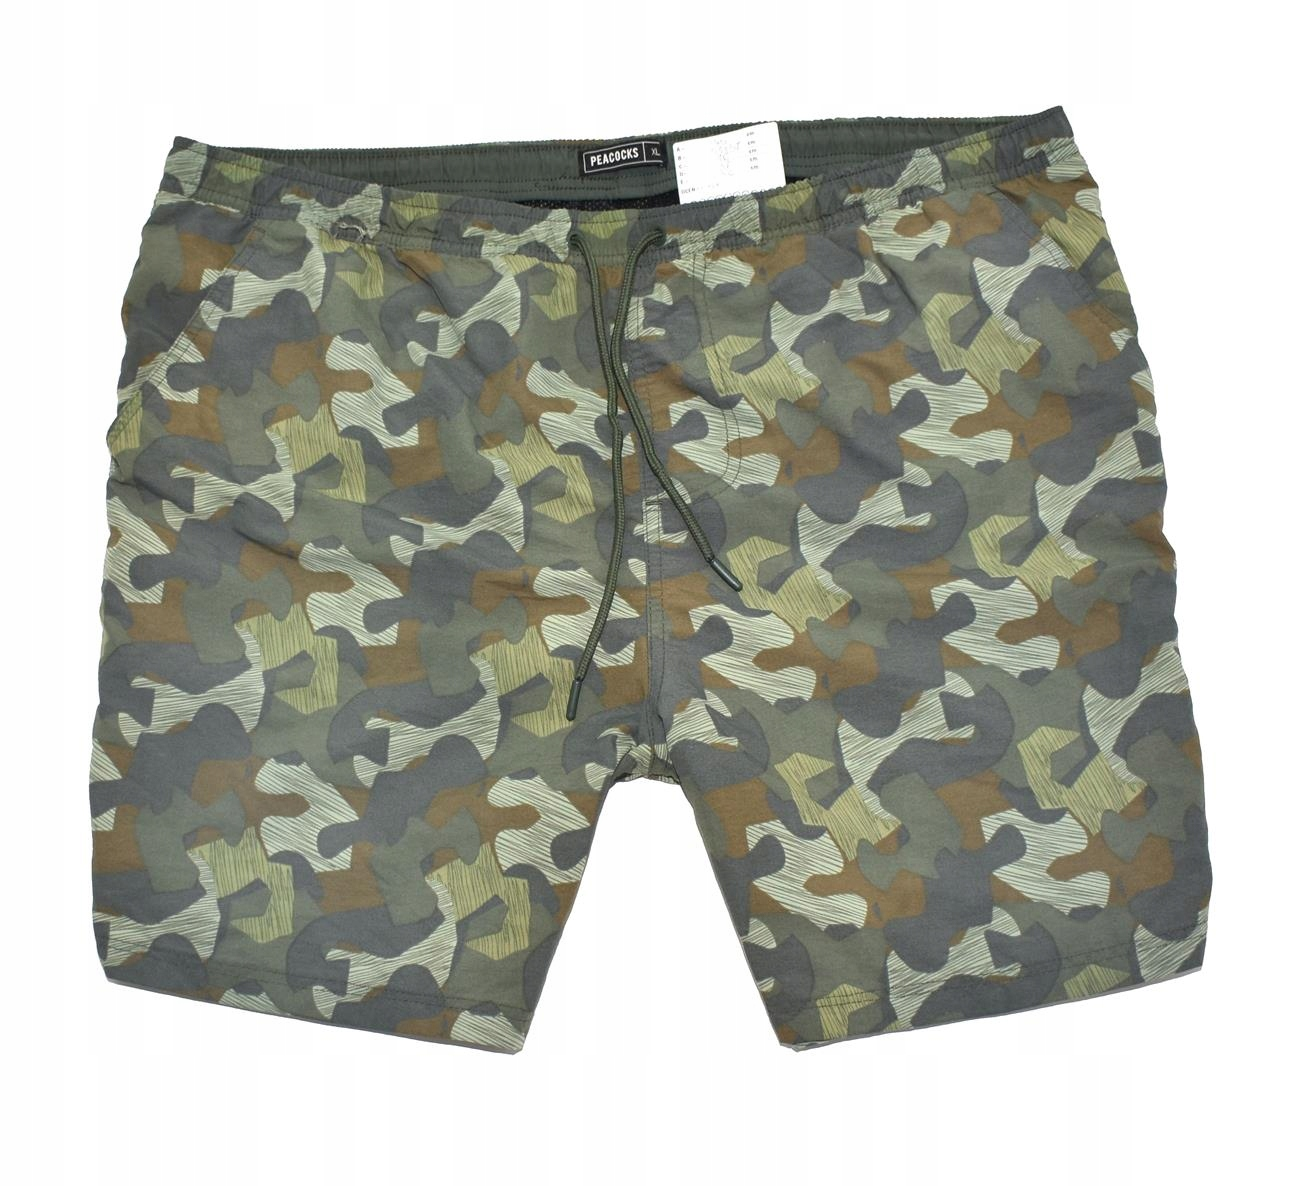 MM 149 PEACOCK_TRENDY MILITARY MORO SHORTS_XL